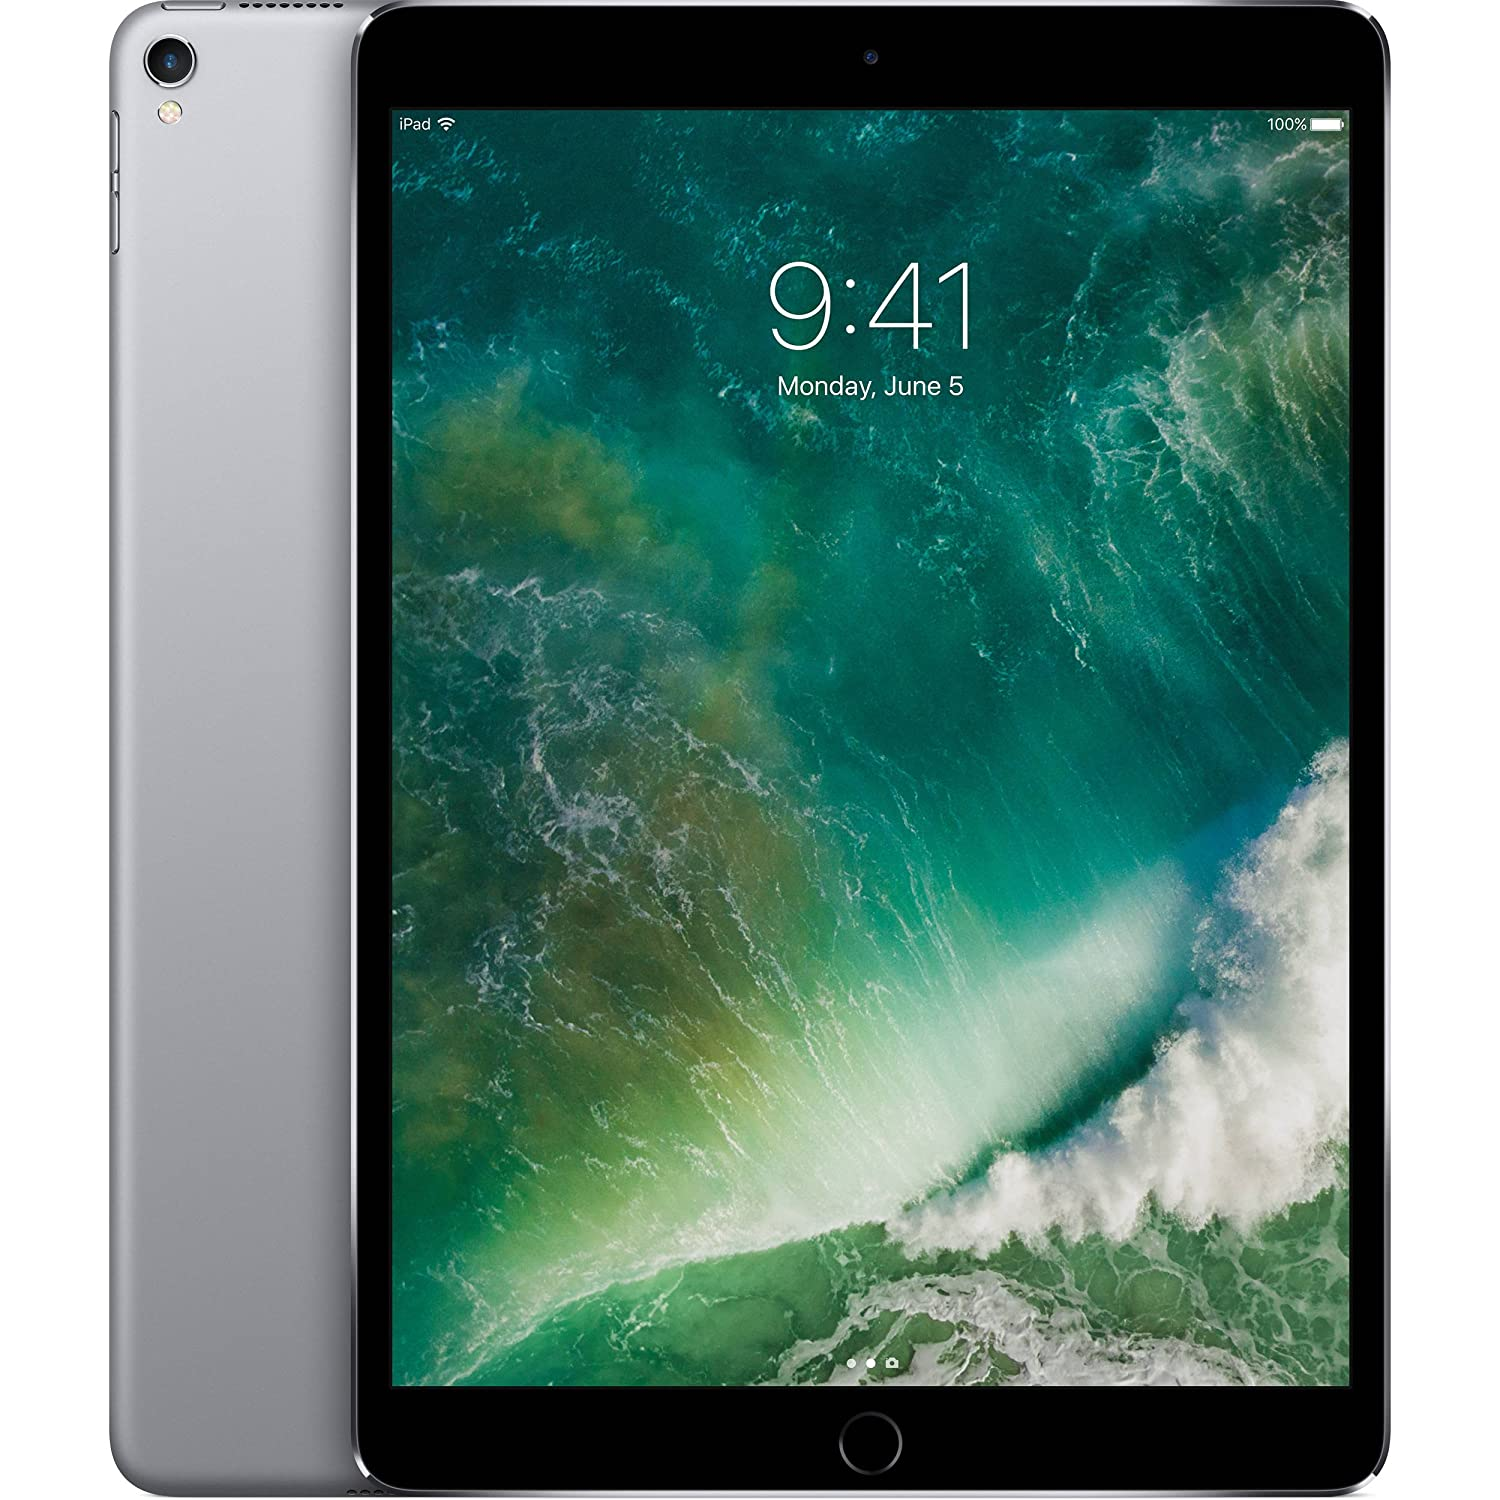 Apple iPad Pro 10.5in with ( Wi-Fi + Cellular ) - 2017 Model - 256GB, SPACE GRAY (Renewed)